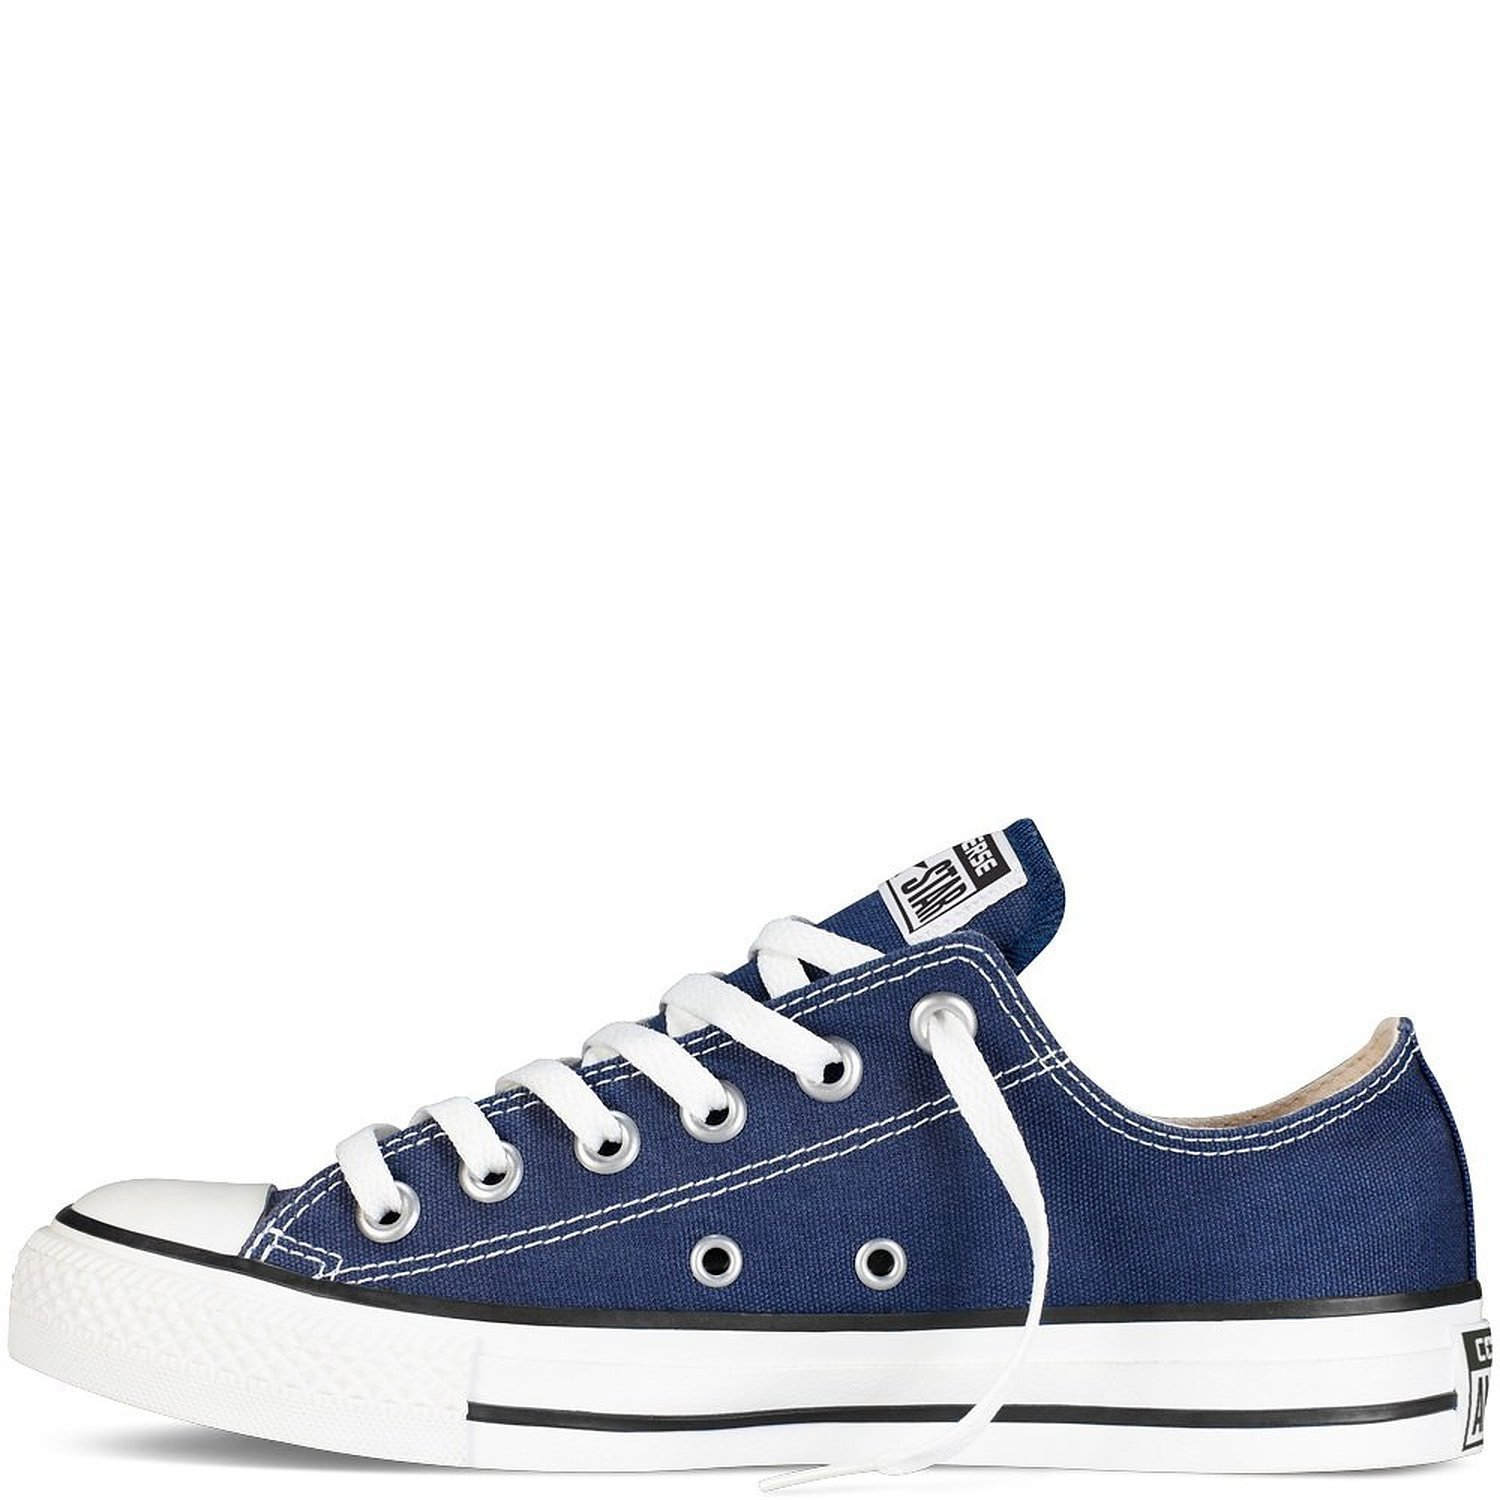 Converse Chuck Taylor Taylor Taylor All Star Low schuhe M9697_5 Navy 6841e0